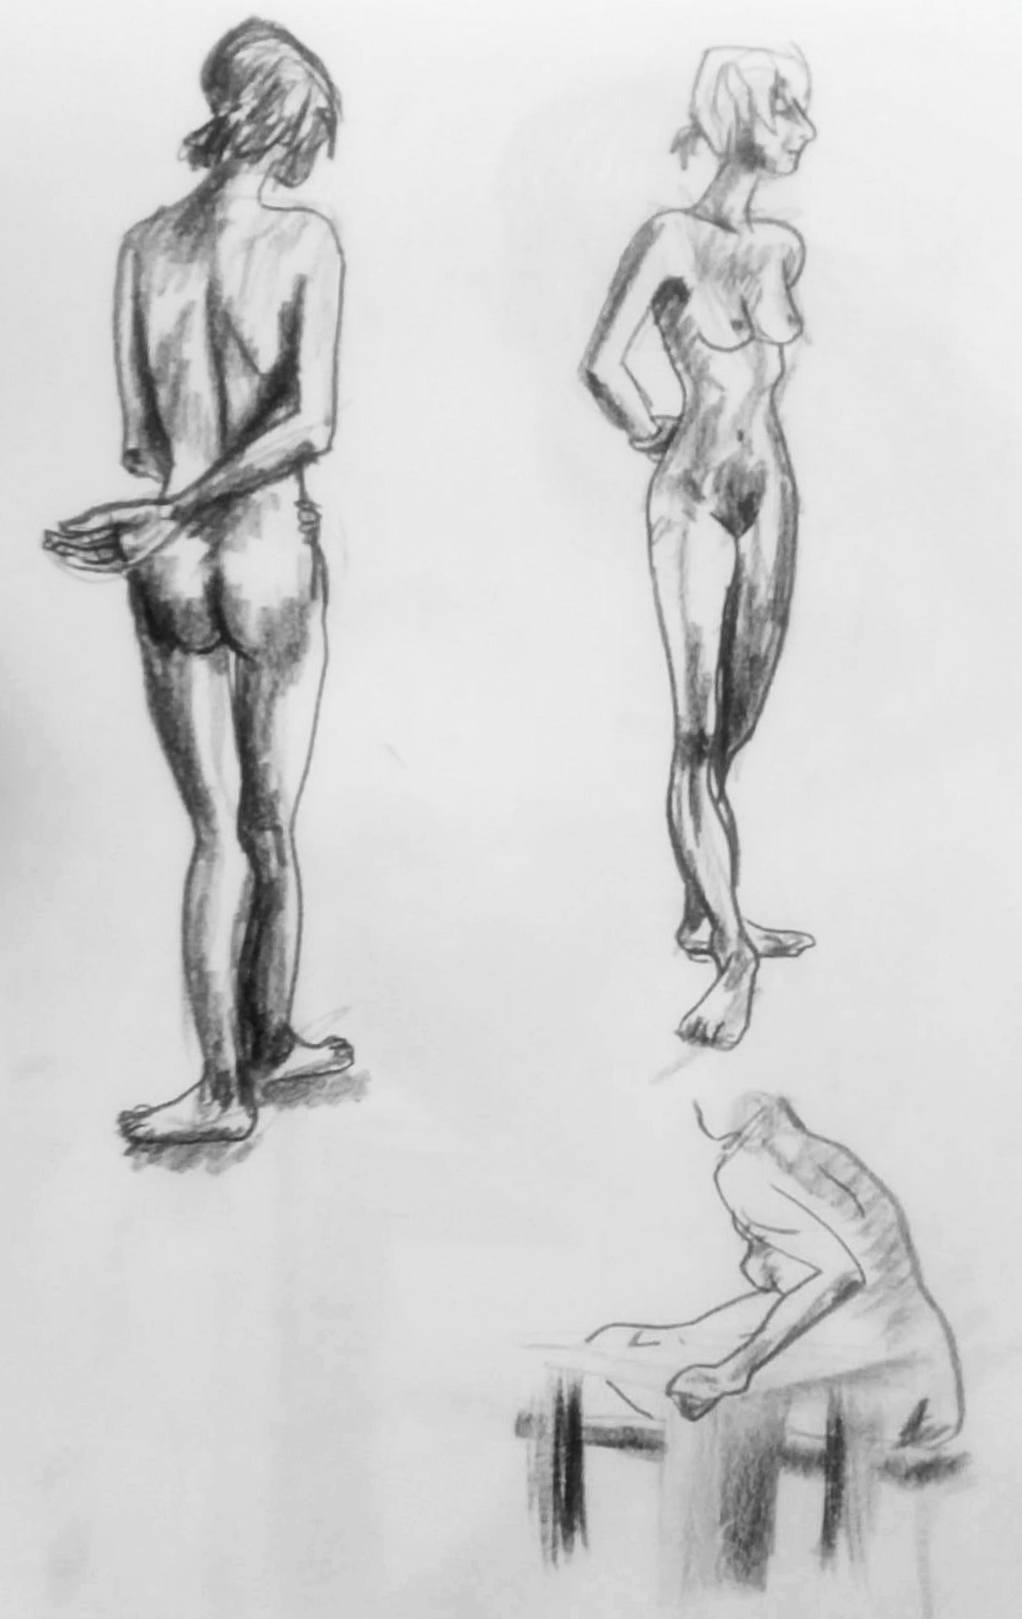 Two 5-minute poses